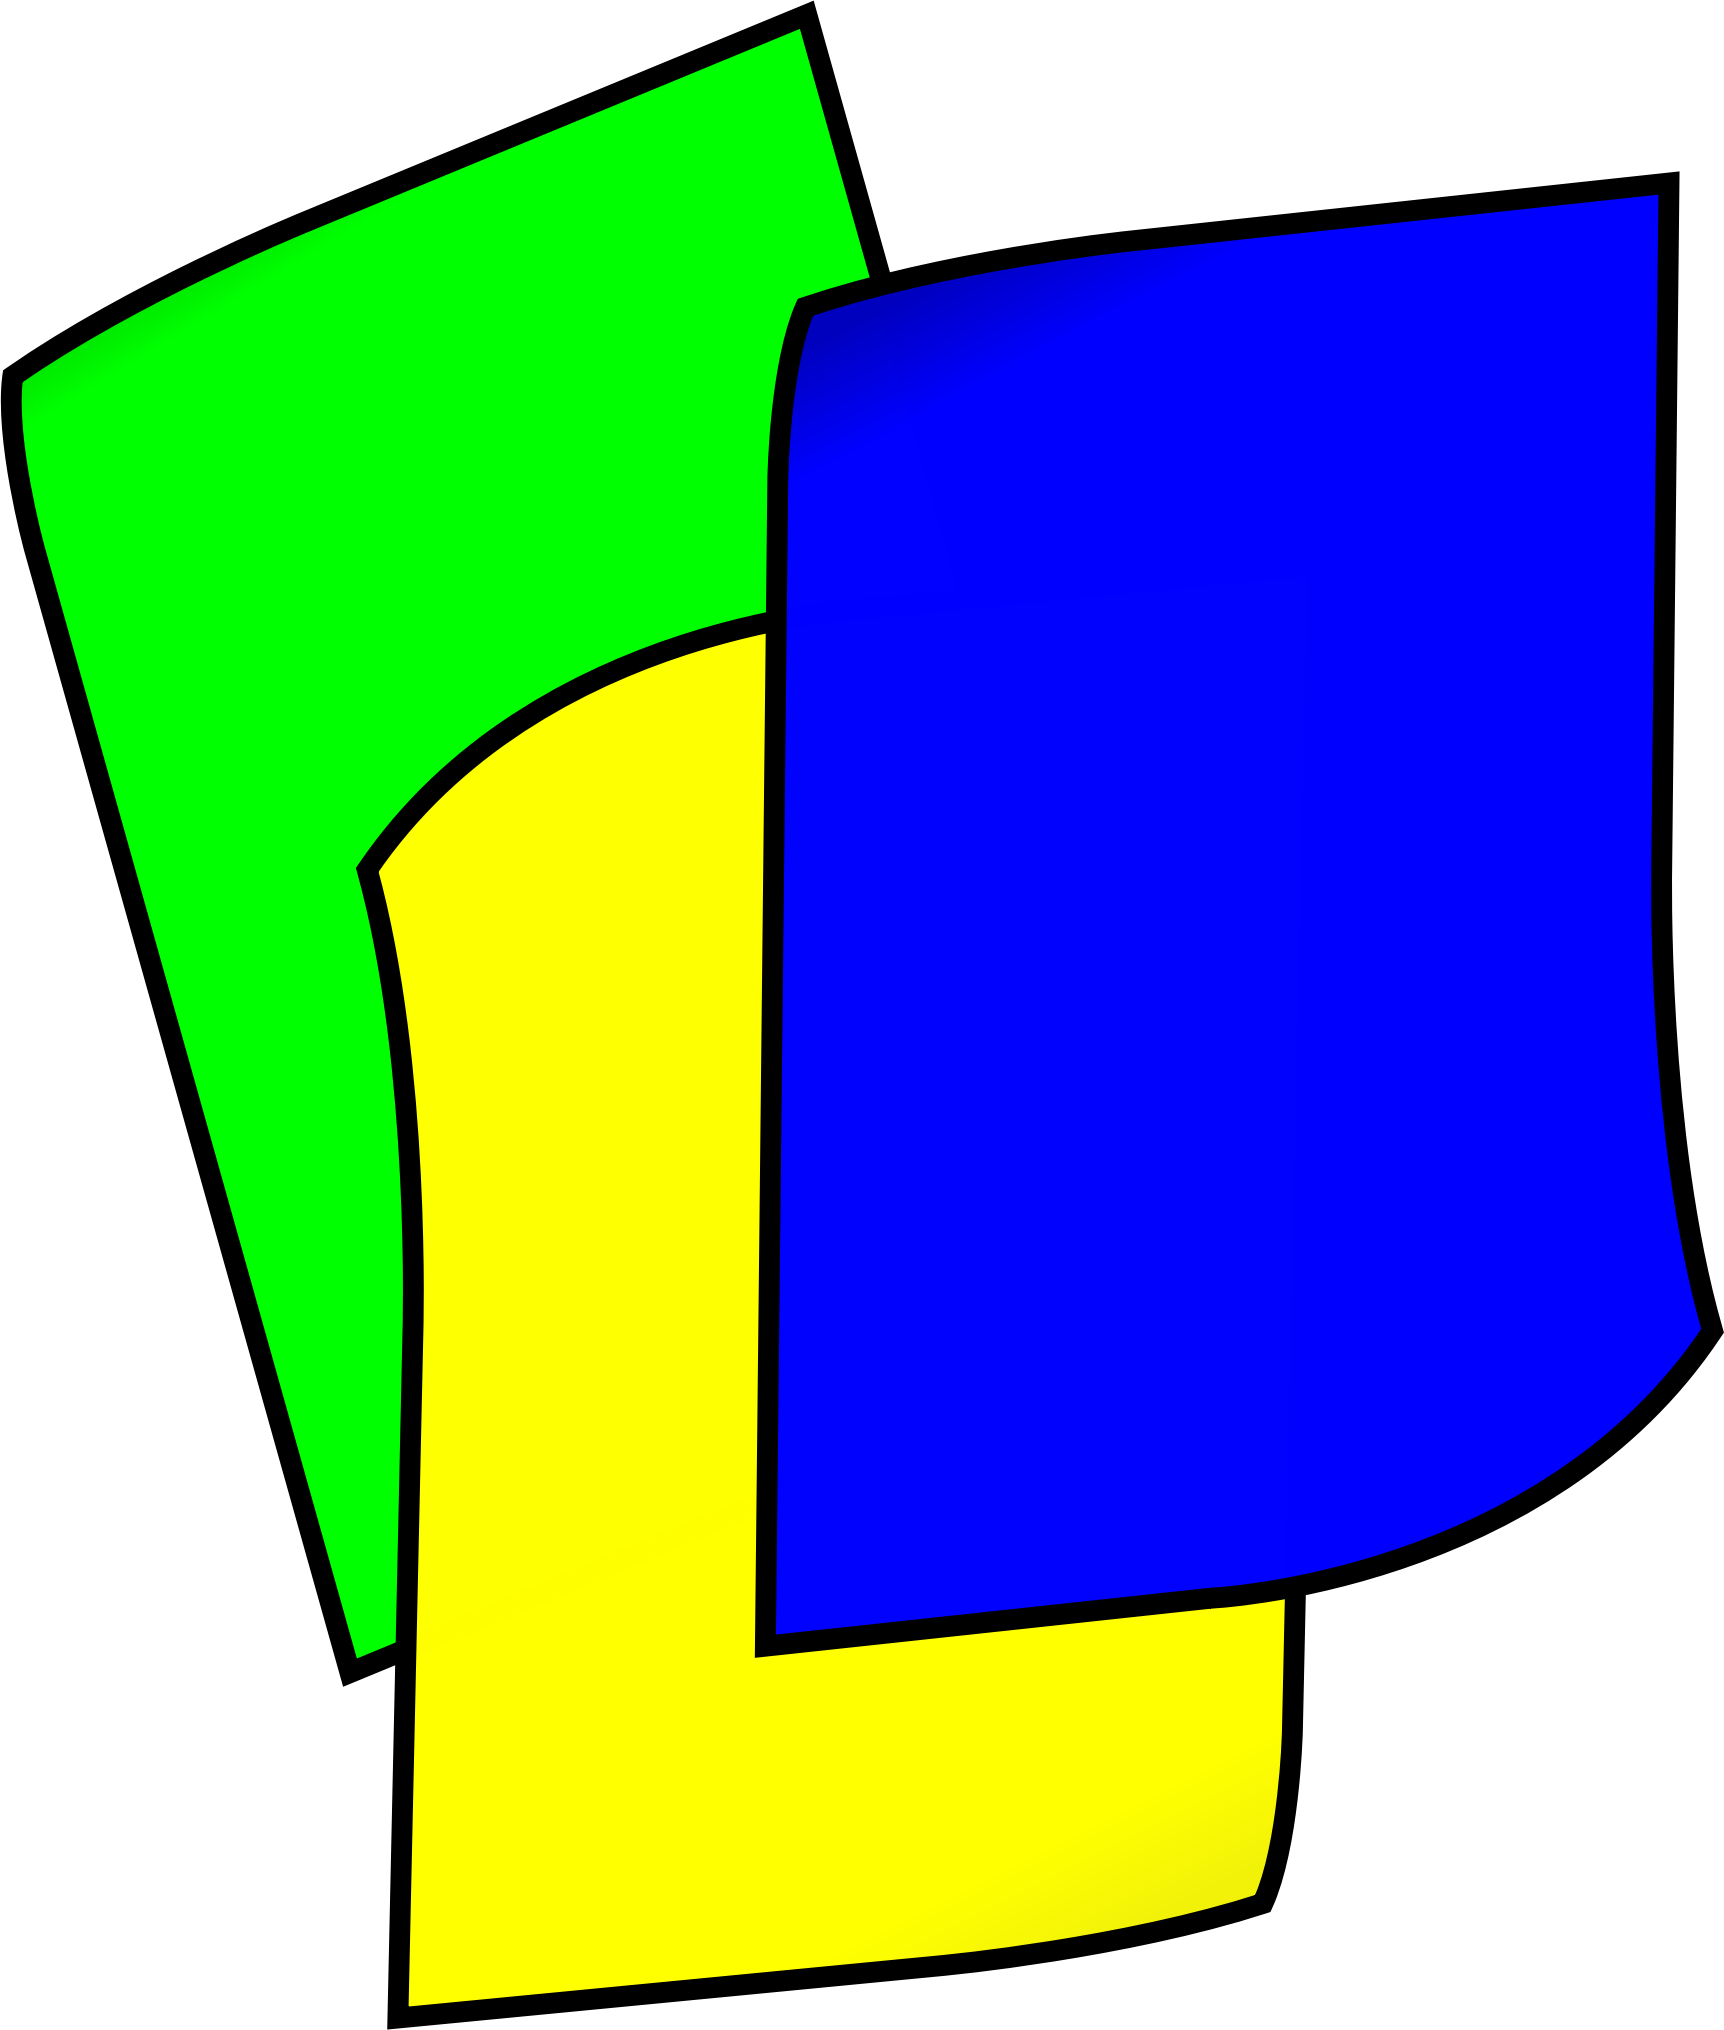 Color paper png. Clipart stack of colored